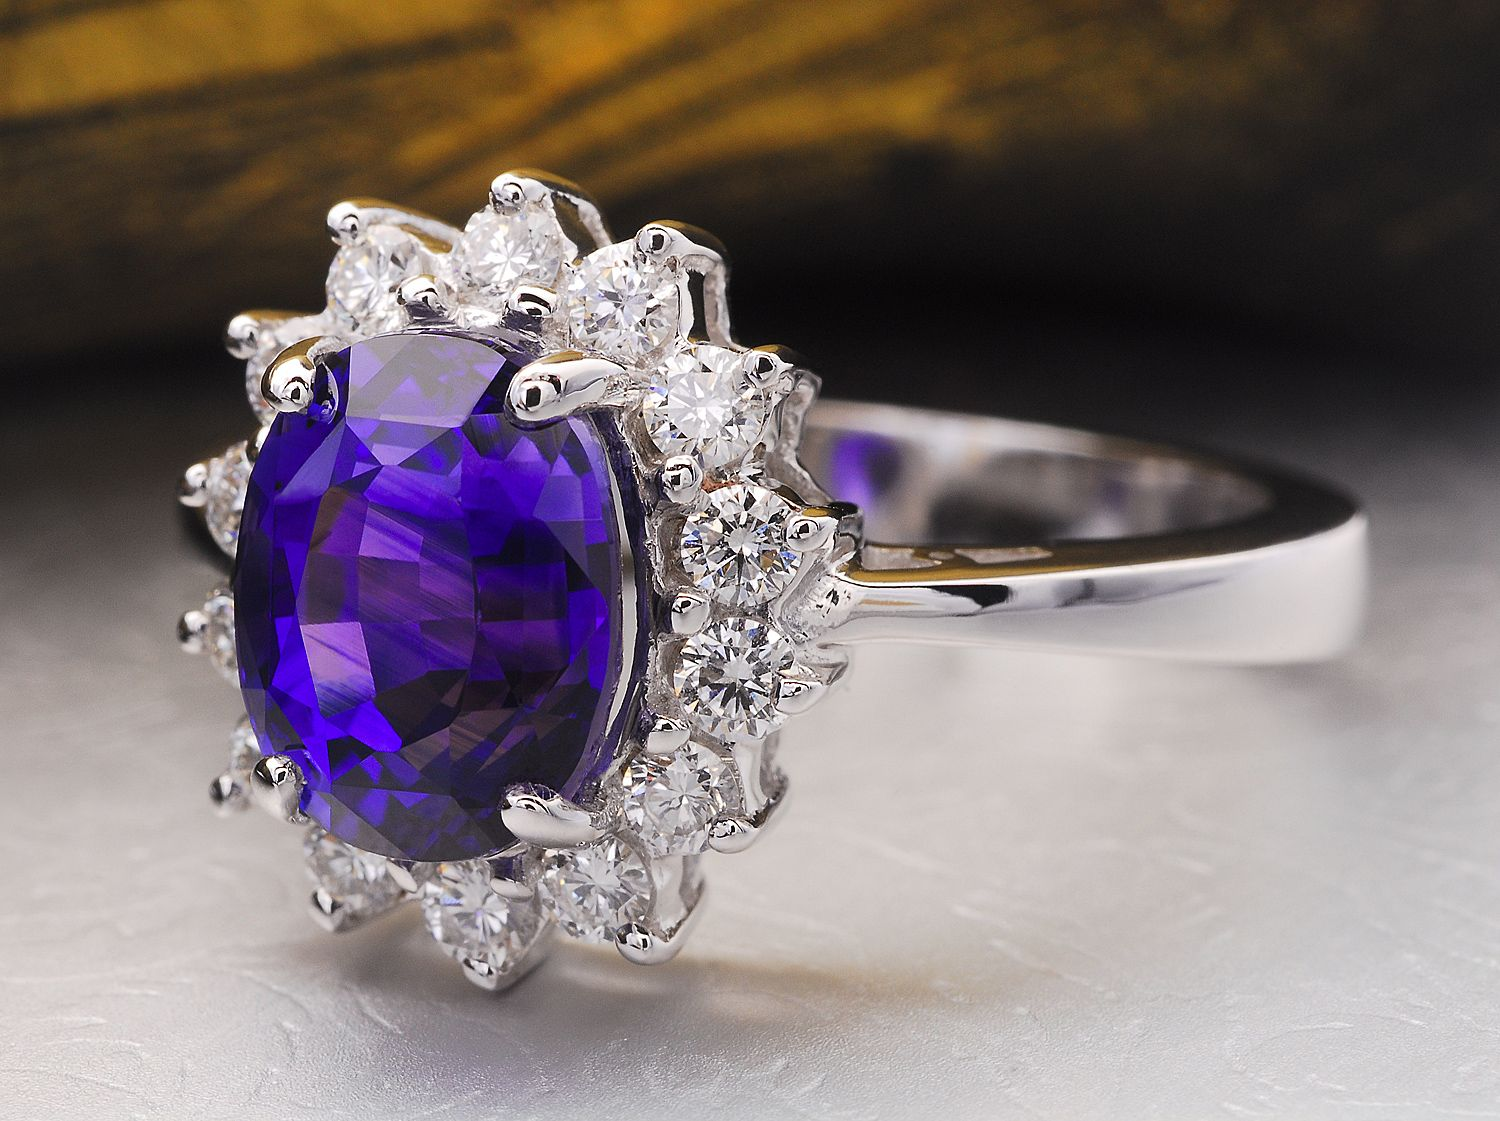 The blue sapphires from Sri Lanka are also known as Ceylon